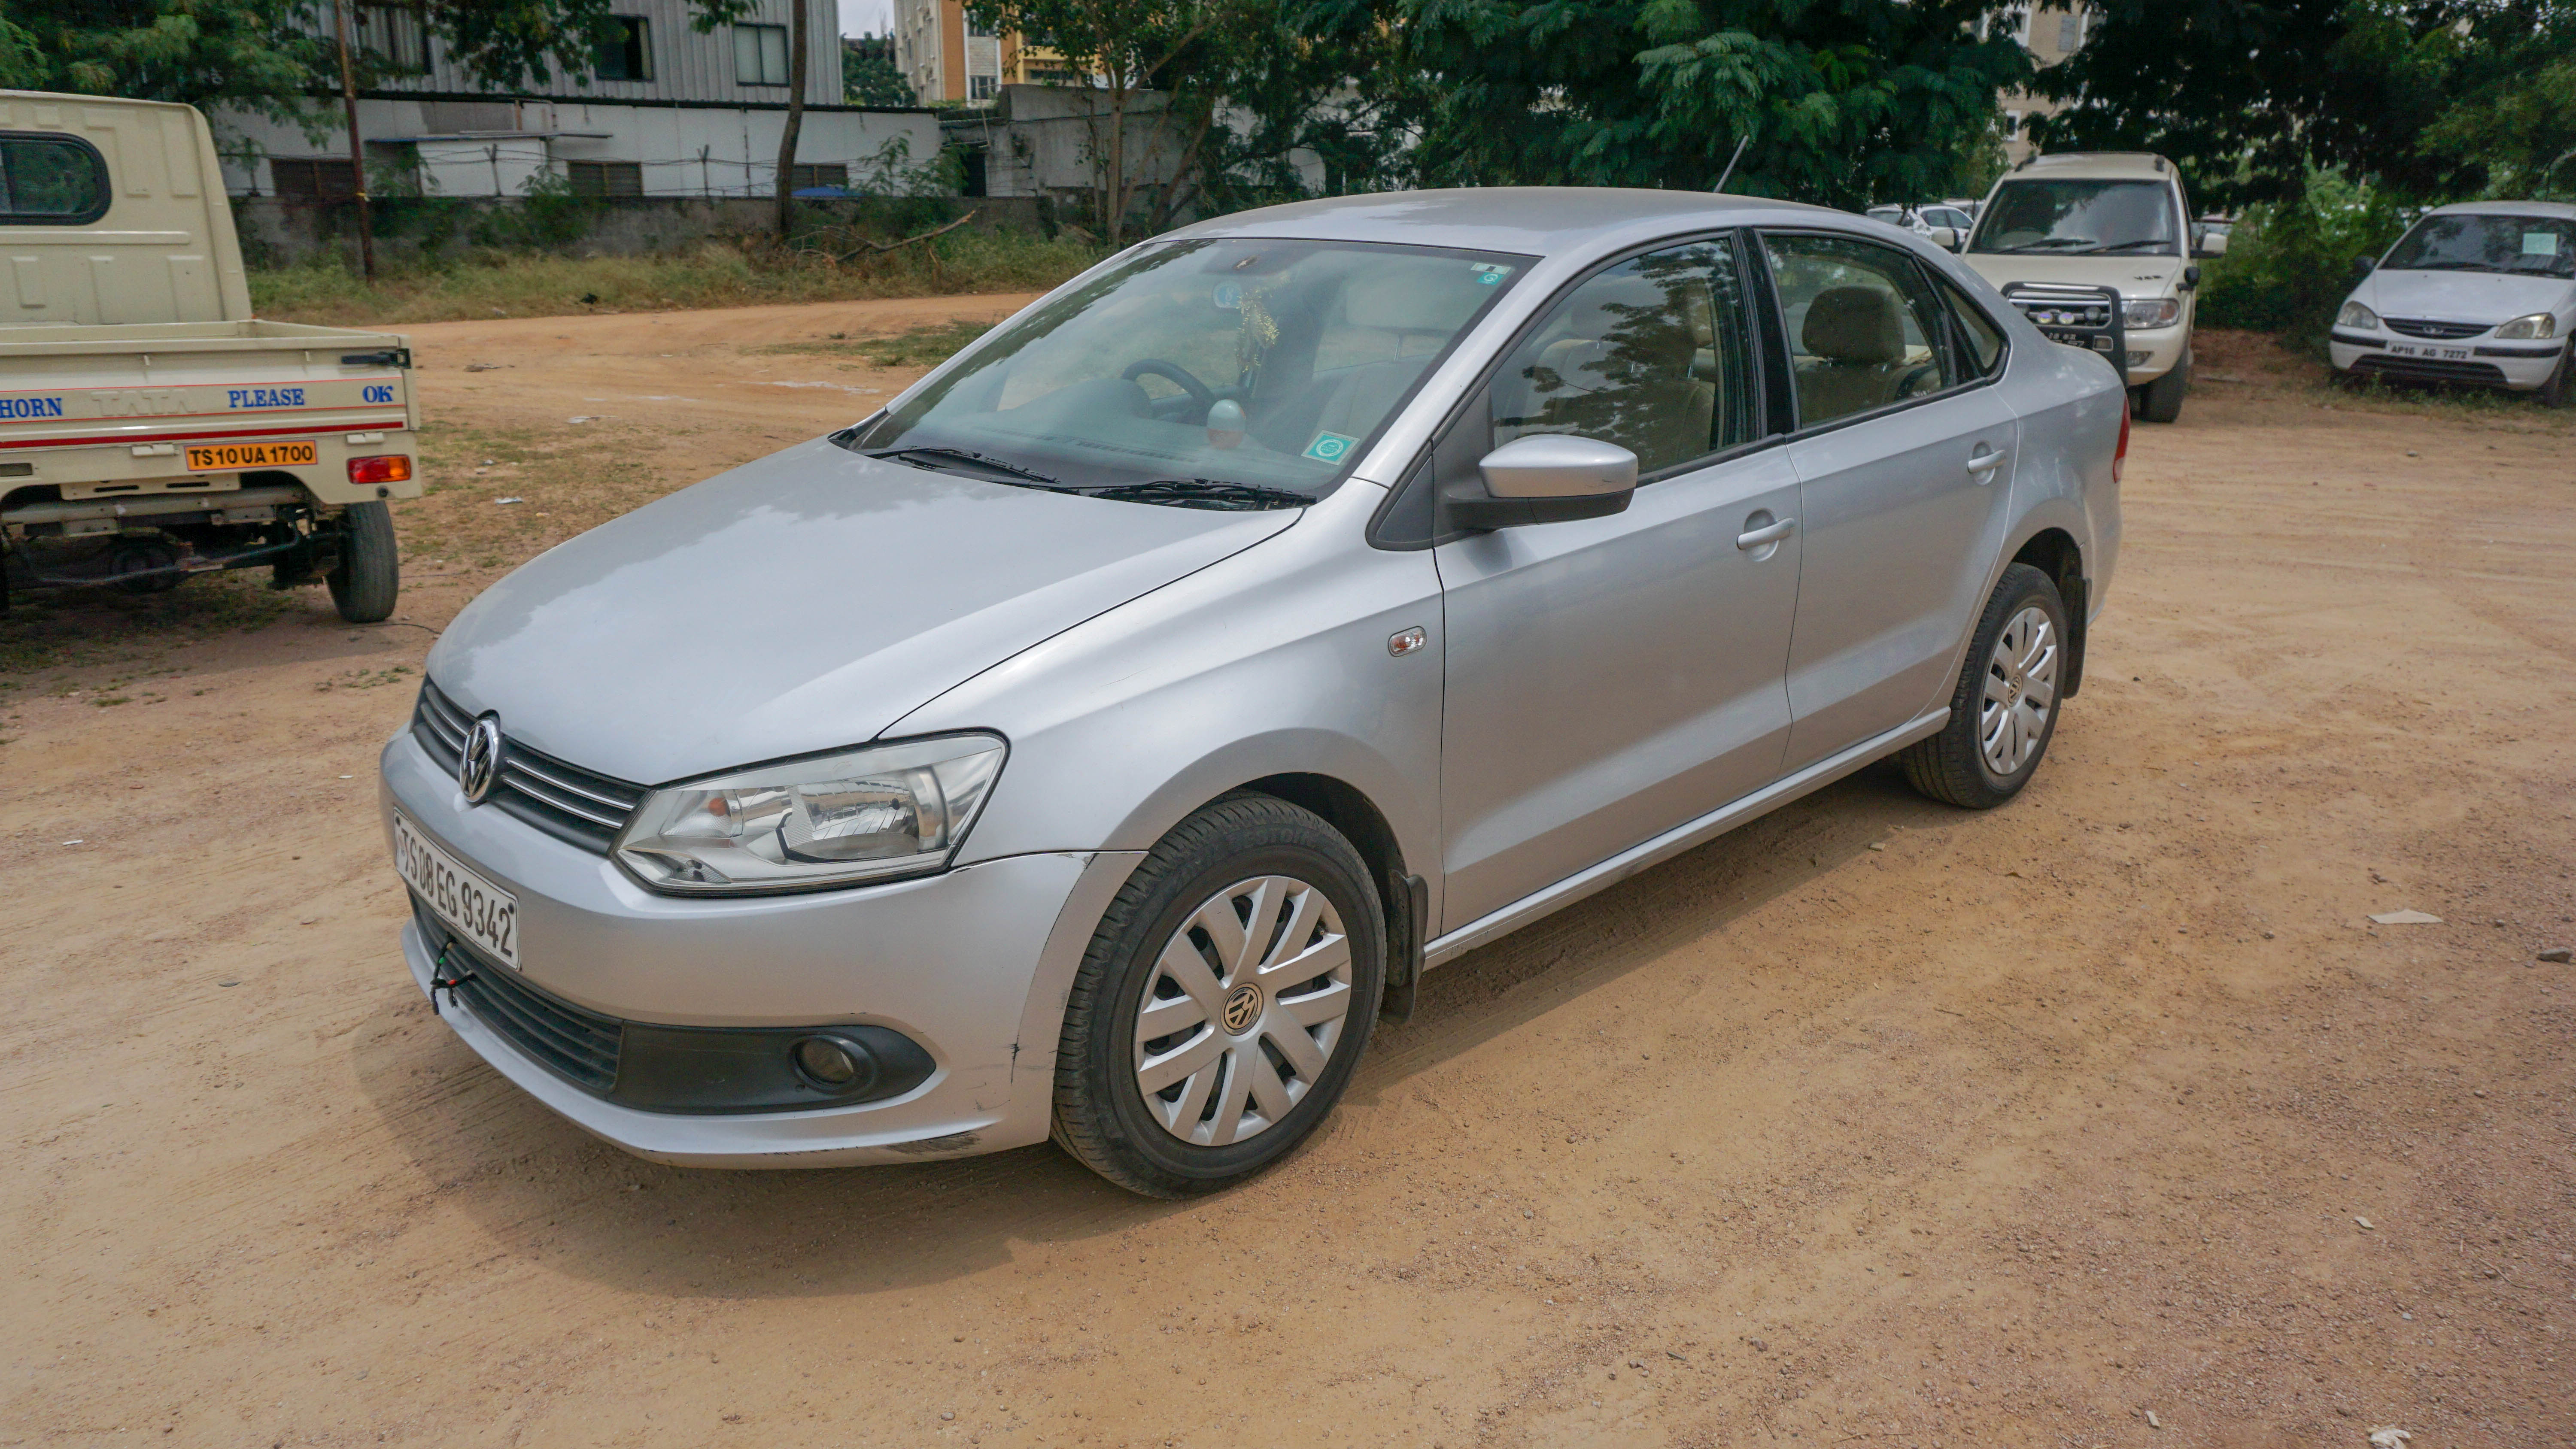 Used Volkswagen Vento 1 6 Comfortline Diesel In Hyderabad 2014 Model India At Best Price Id 58468